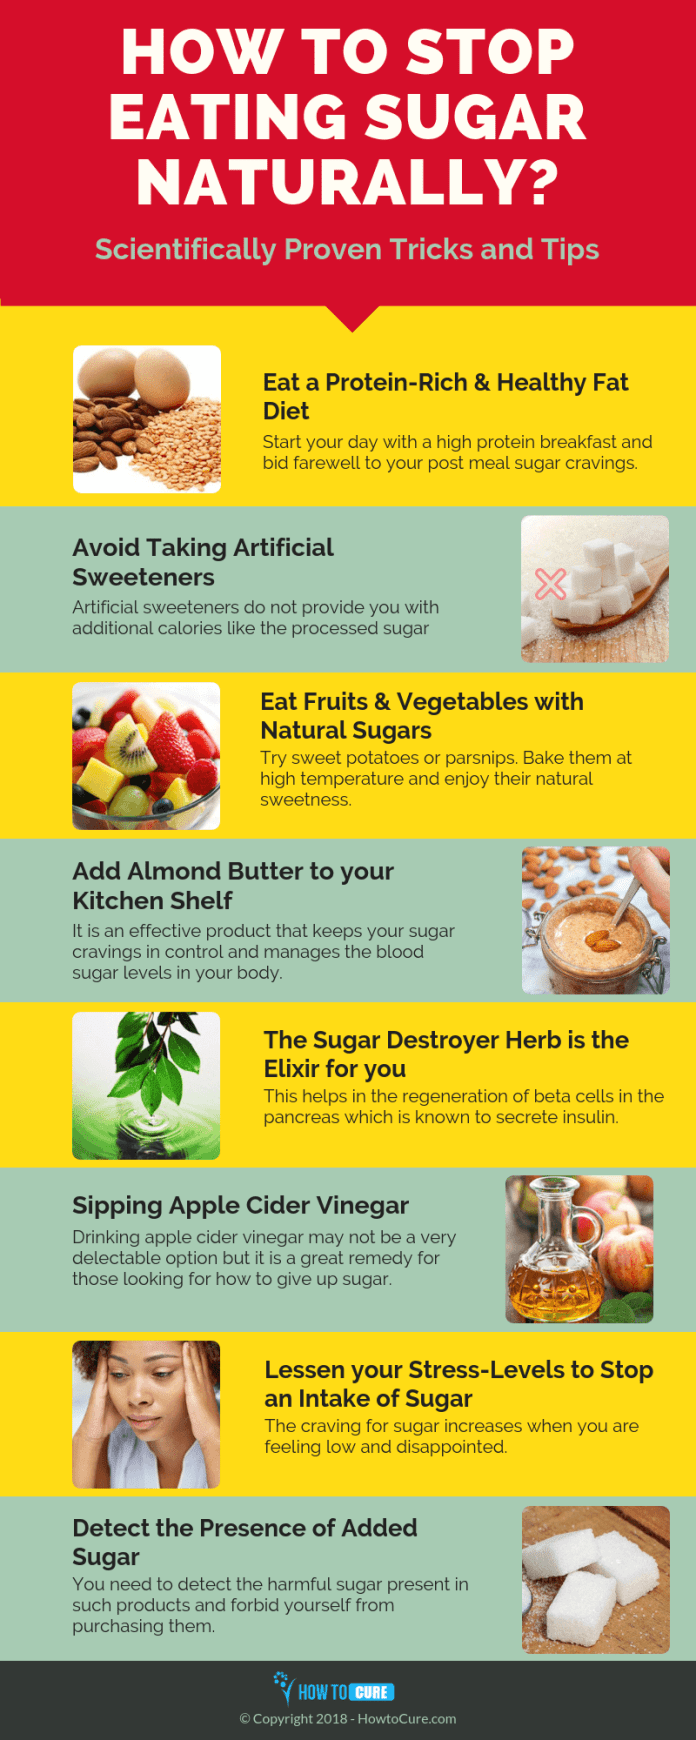 how to stop sugar naturally